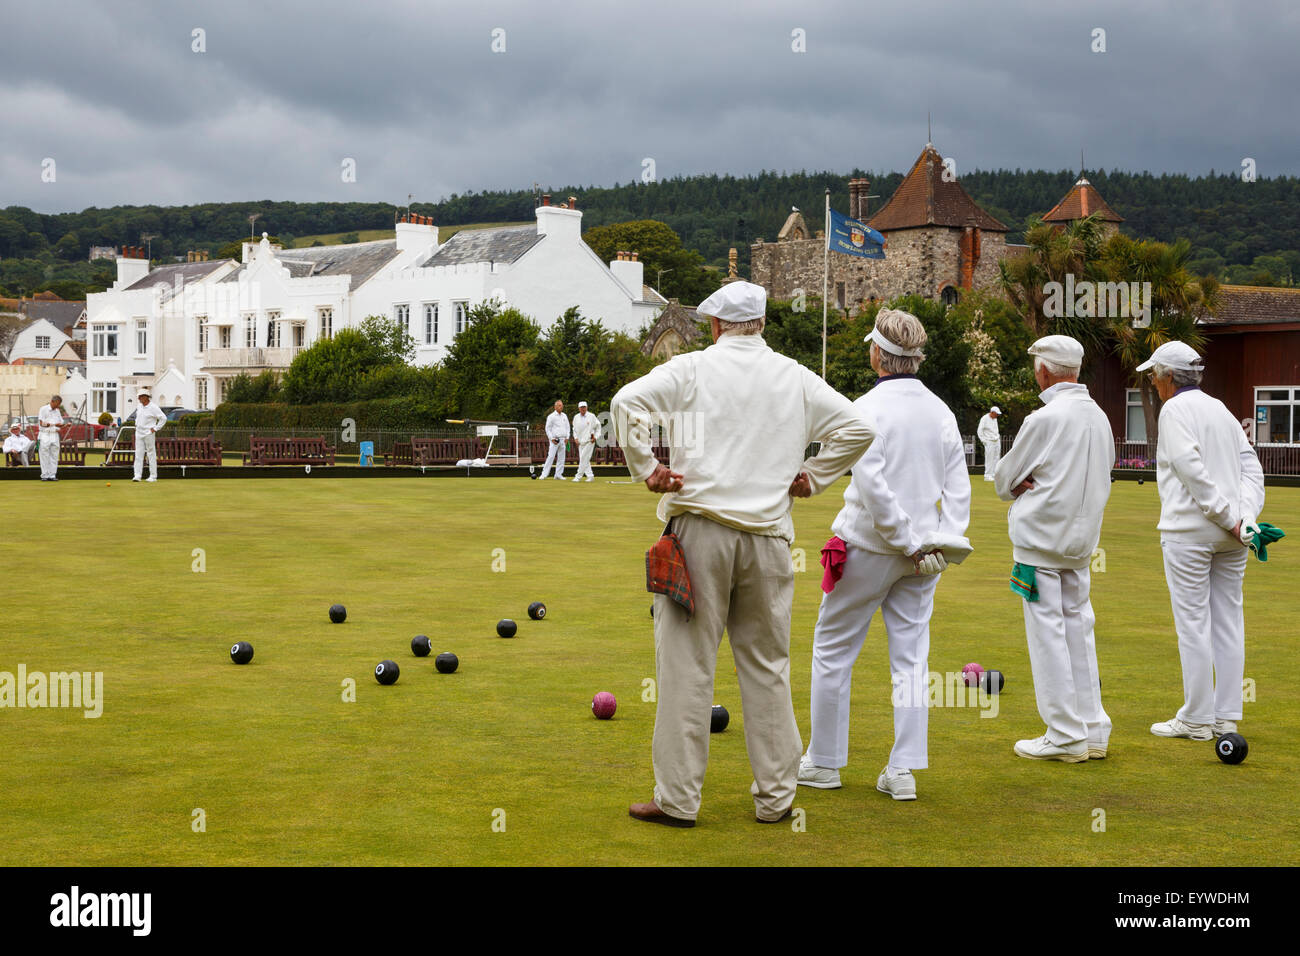 Senior men and women of Sidmouth Bowls Club playing bowls. Stock Photo